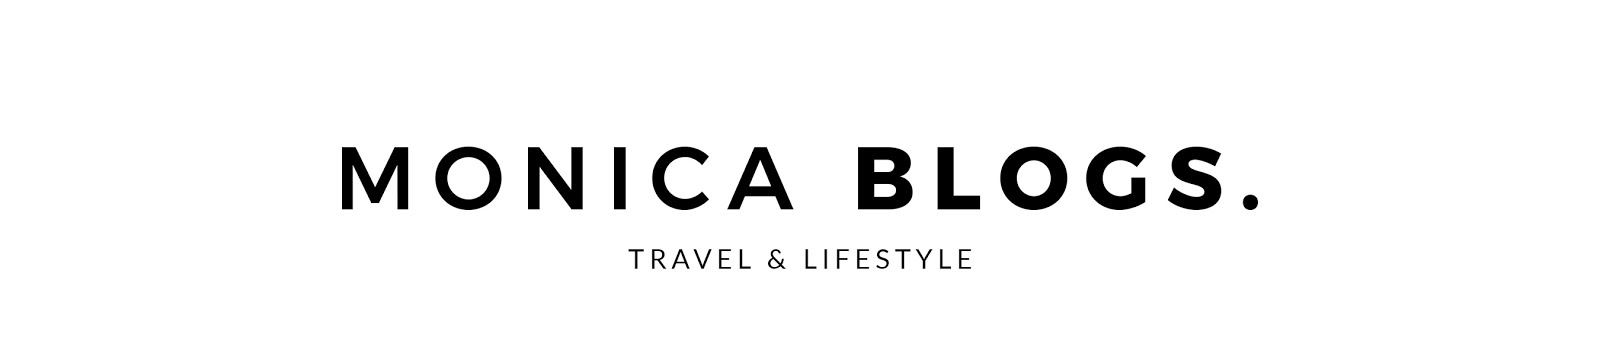 Monica Wilson | Travel & Lifestyle